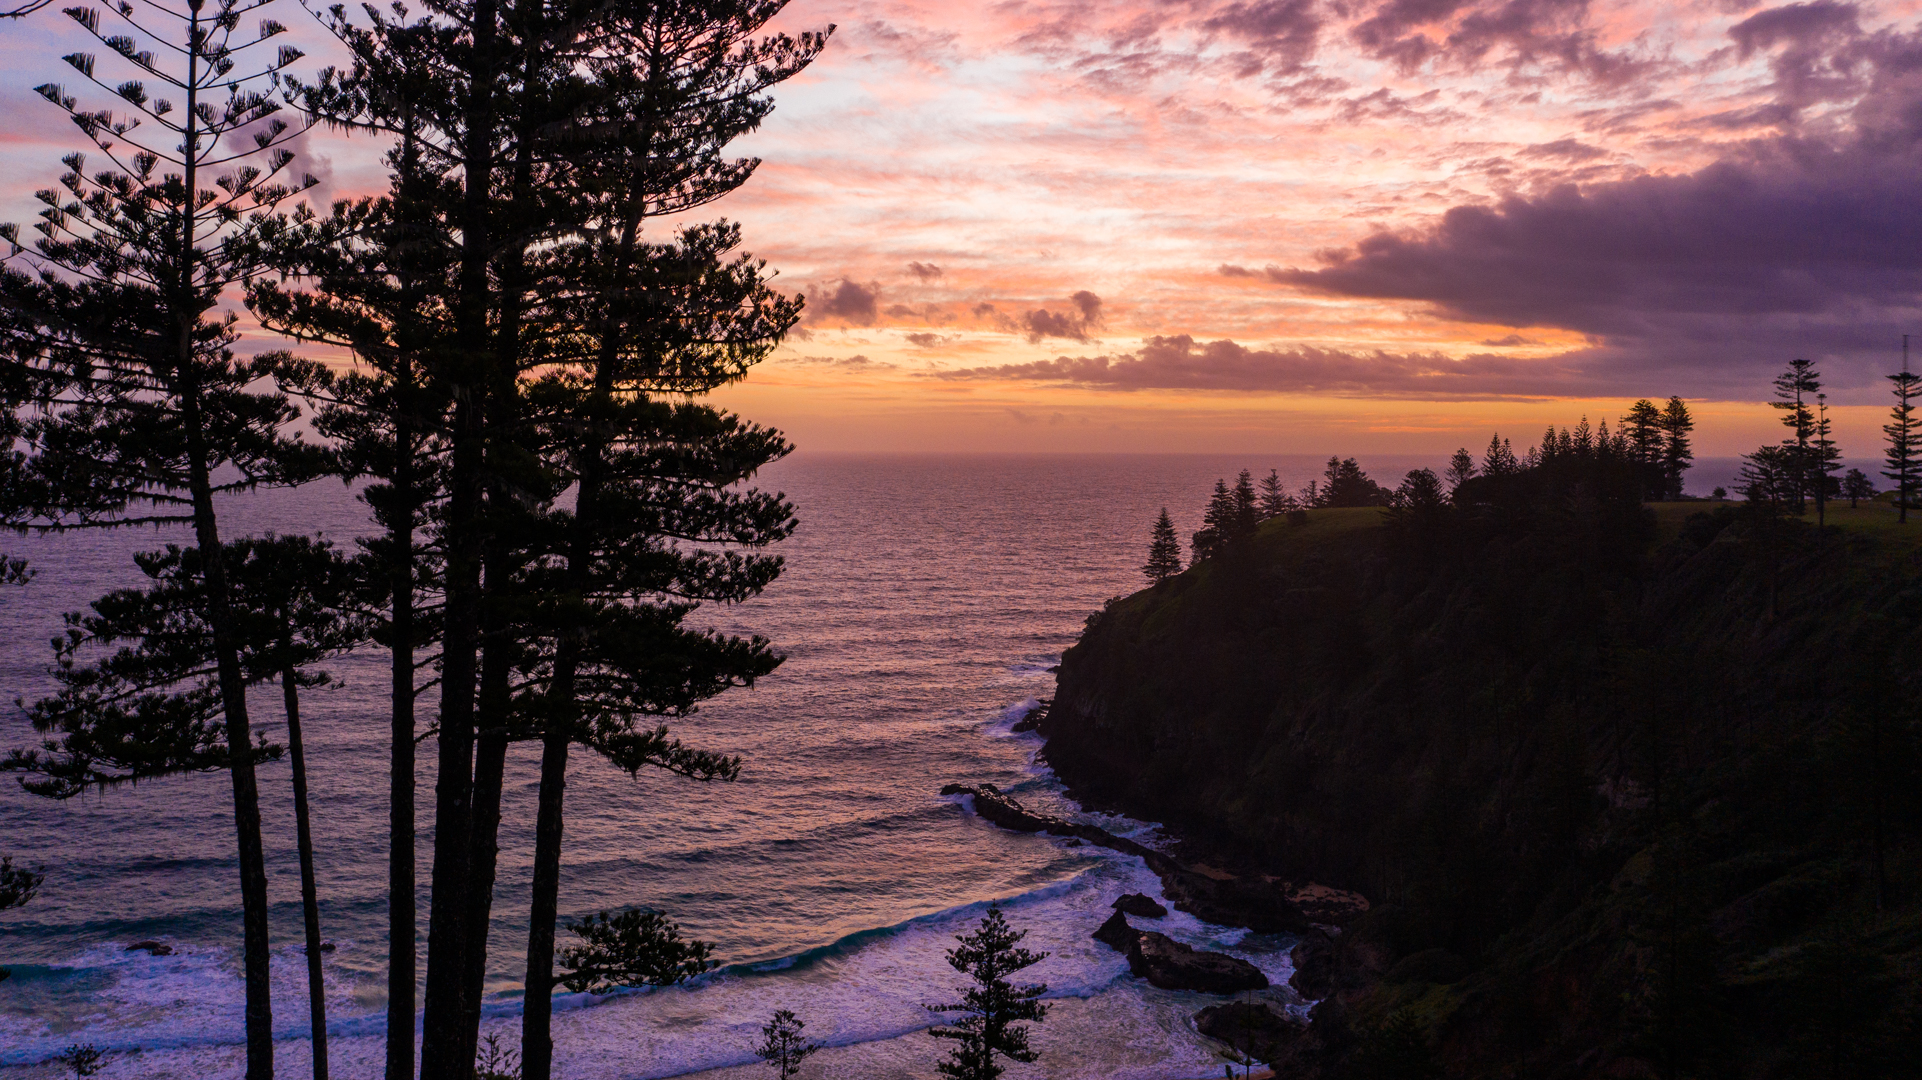 An elevated view of waves rolling towards the base of a cliff as the sun sets over the ocean. Tall norfolk pine trees can be seen growing on the left, as well as in the distance on the top of a cliff.